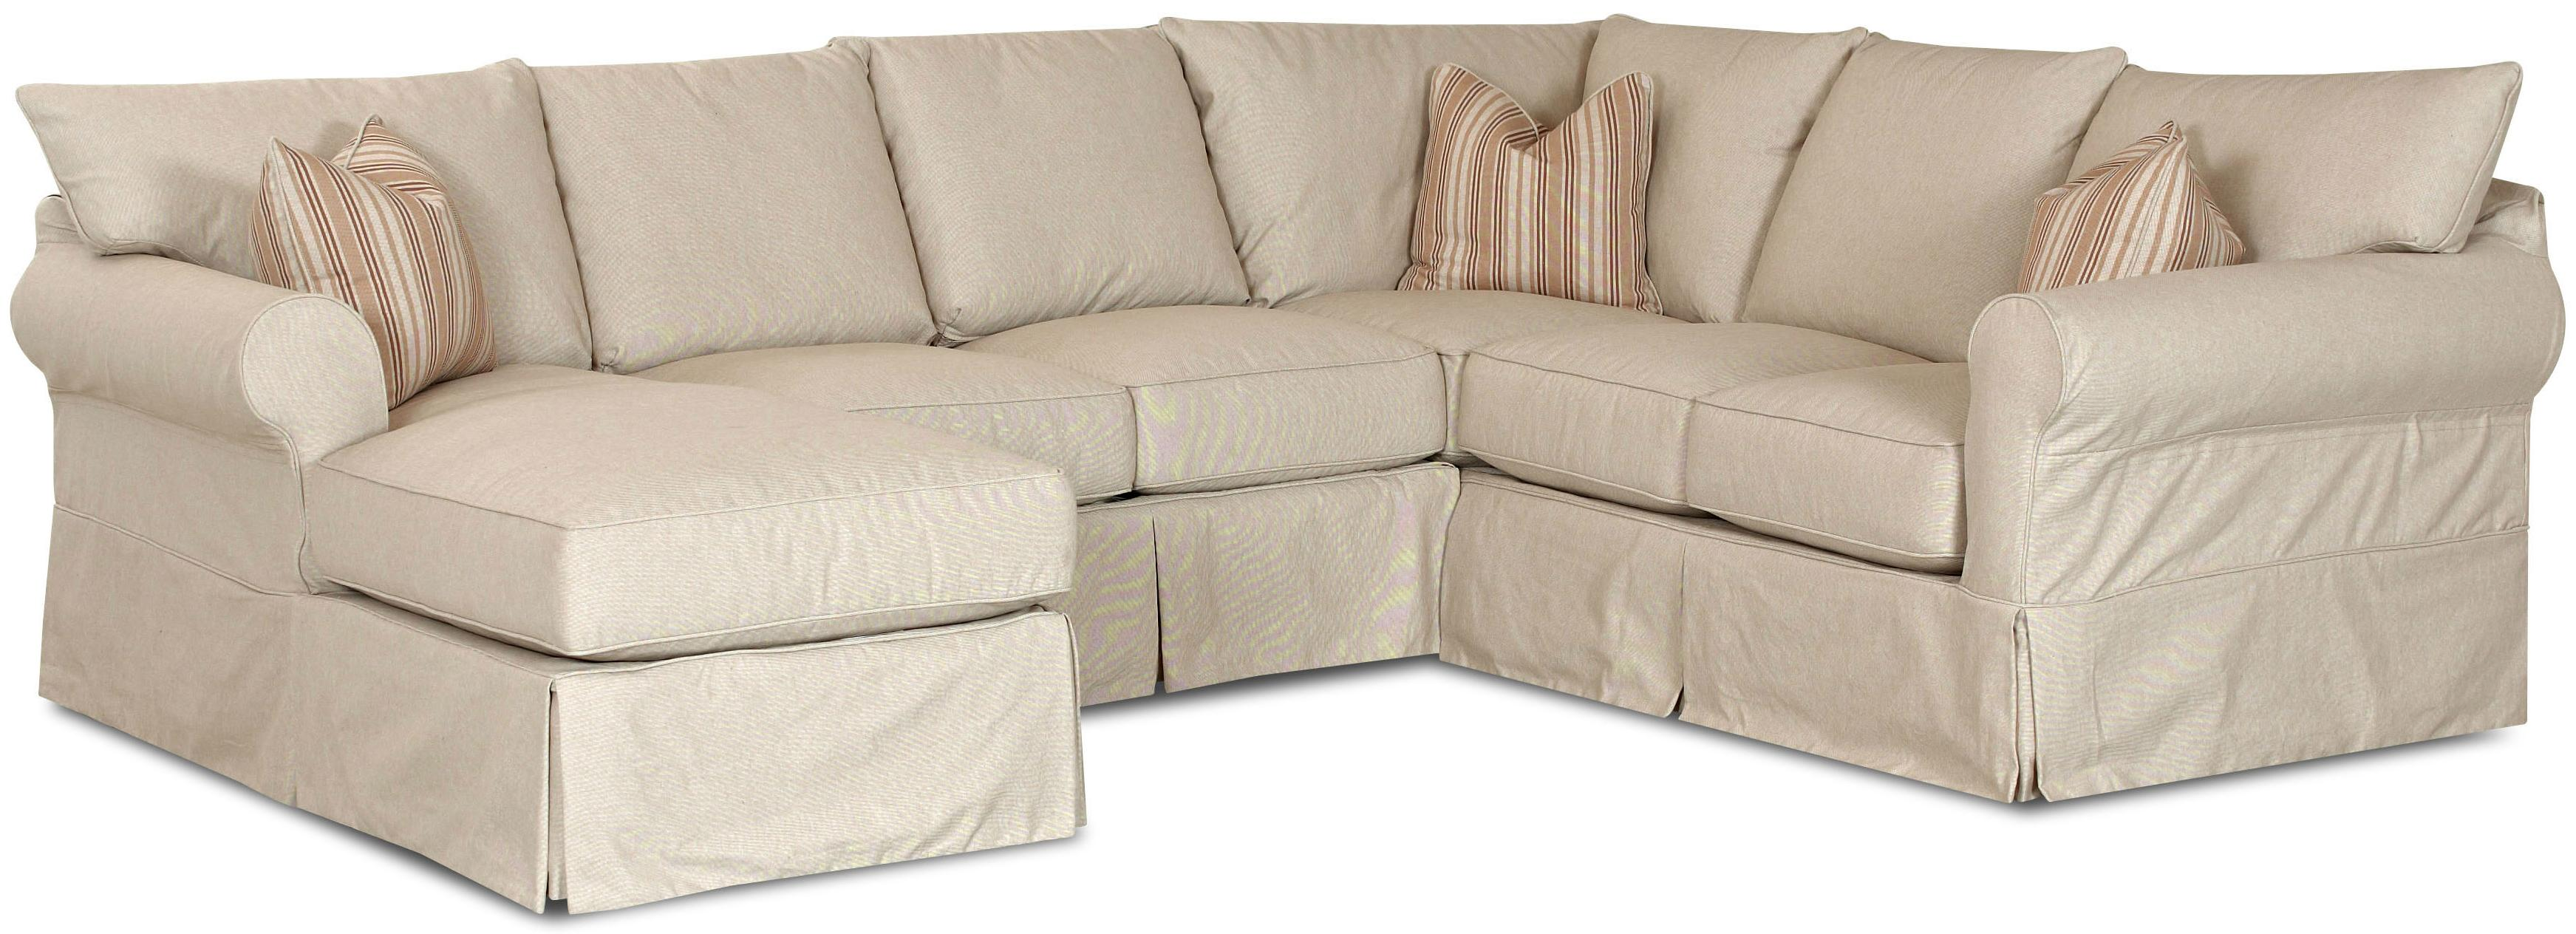 Slip cover sectional sofa with left chaise by klaussner for Furniture 2 u